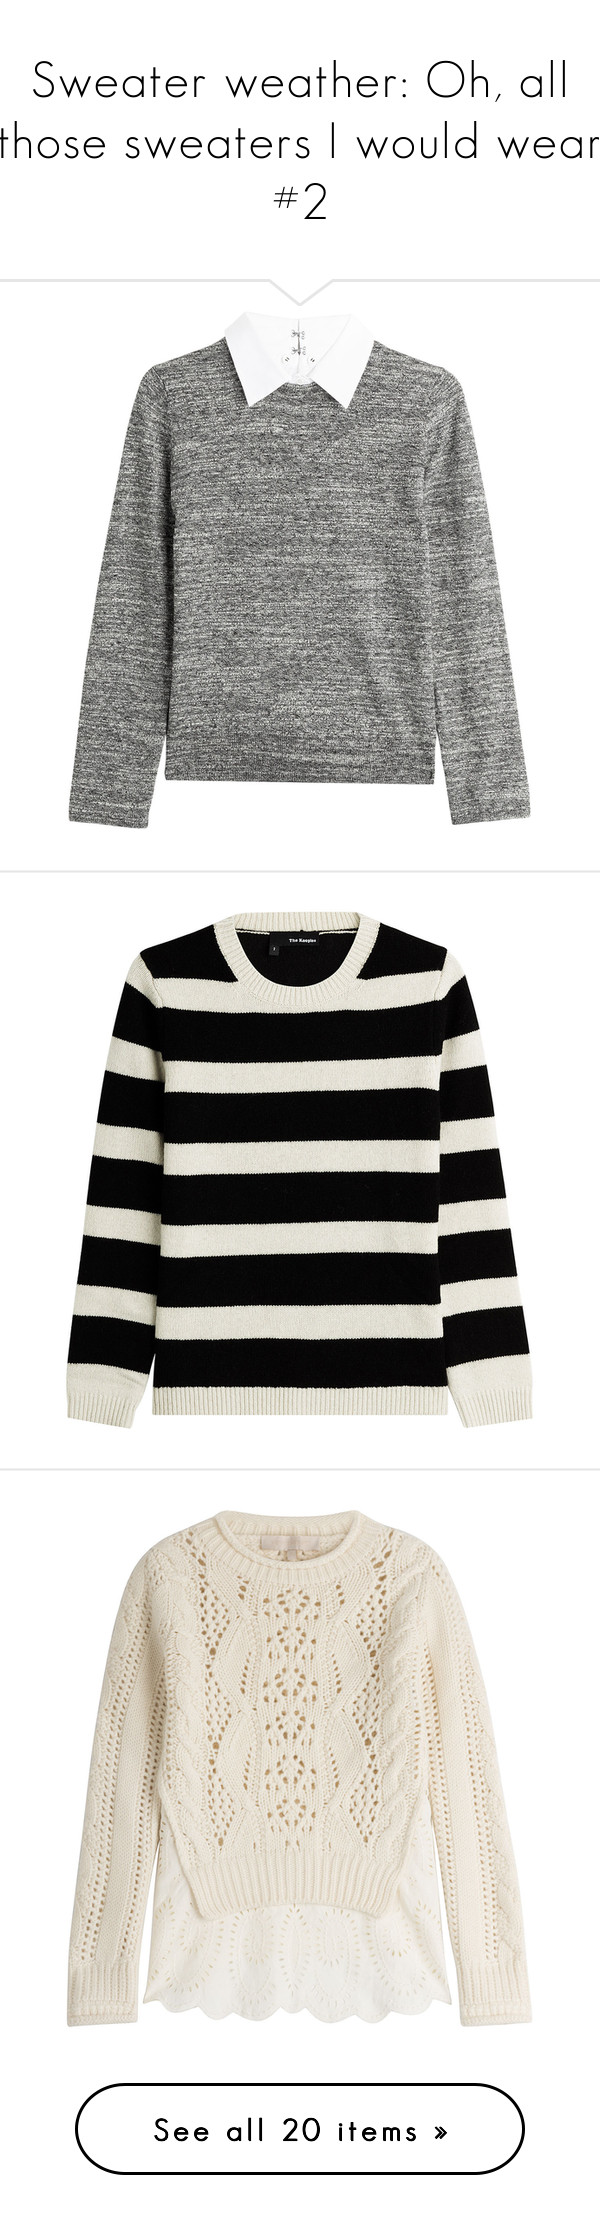 """""""Sweater weather: Oh, all those sweaters I would wear #2"""" by the92liner ❤ liked on Polyvore featuring tops, sweaters, shirts, jumper, grey, cotton sweater, wool zip sweater, cotton pullover sweater, wool shirt and zipper shirt"""